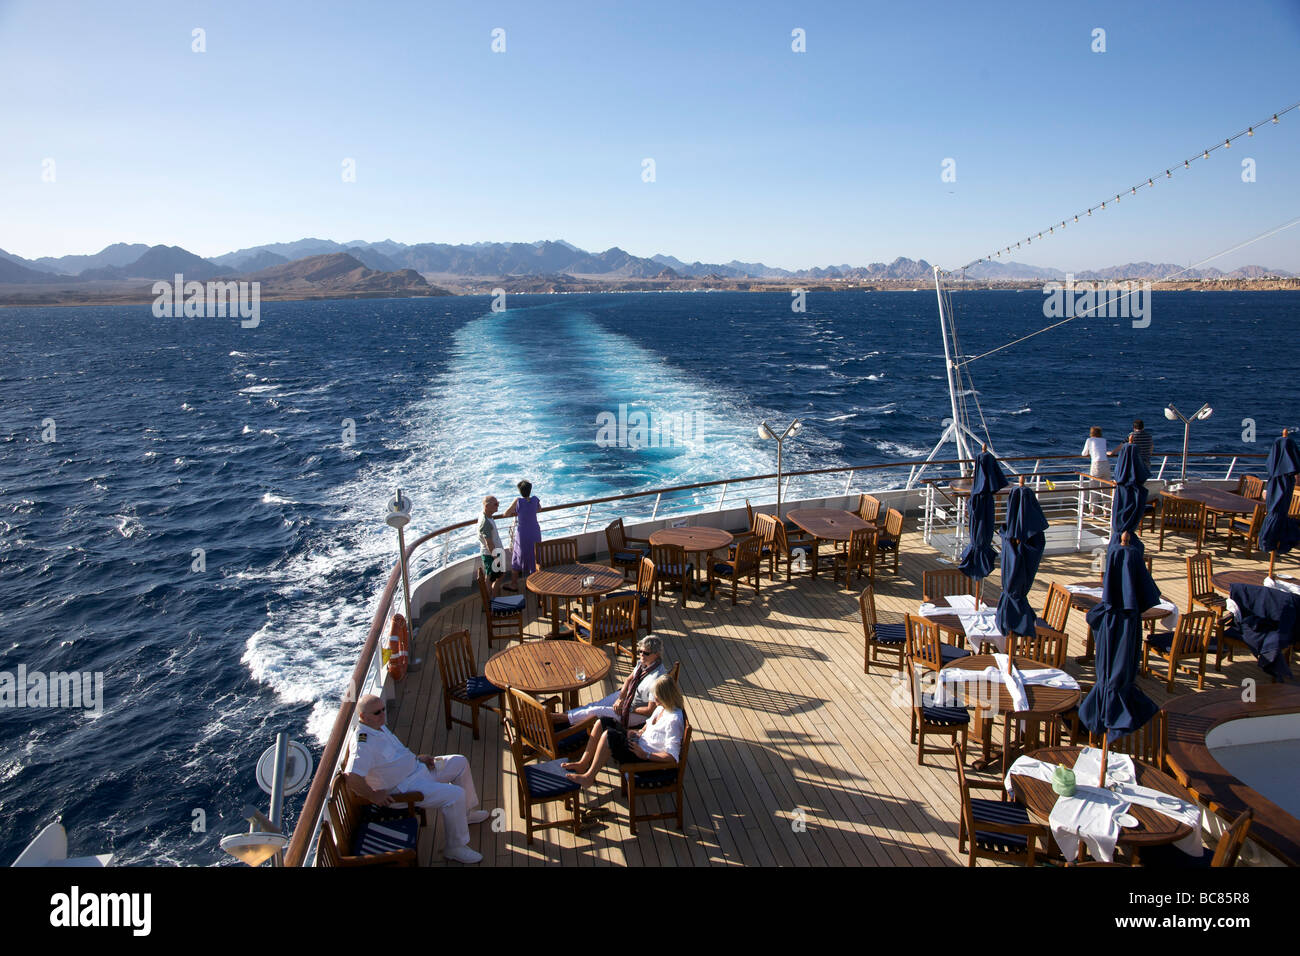 The pool deck of the Swan Hellenic Cruise Ship 'Minerva' - Stock Image